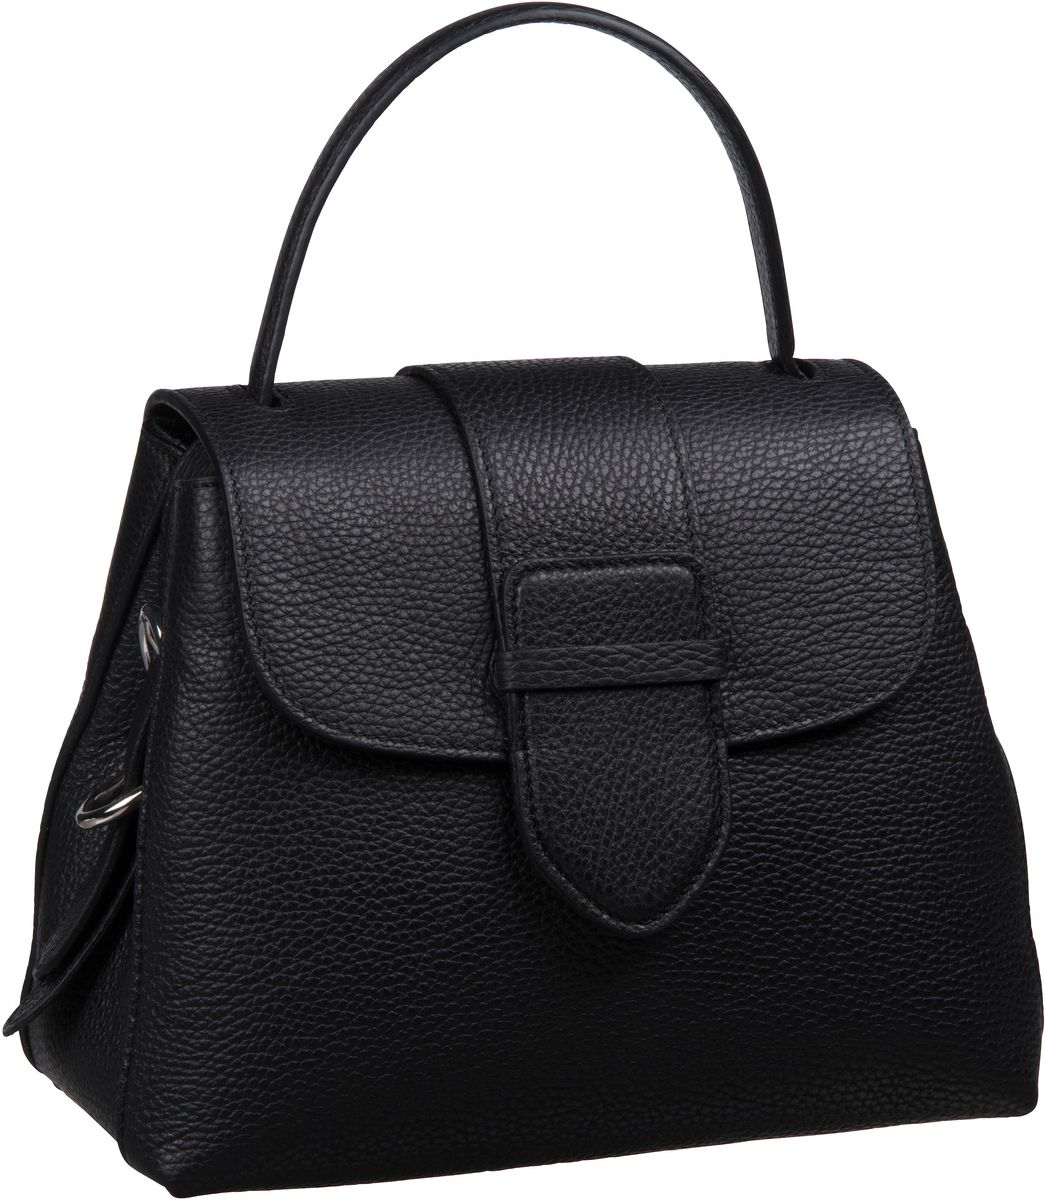 Handtasche Calf Adria 28178 Black/Nickel